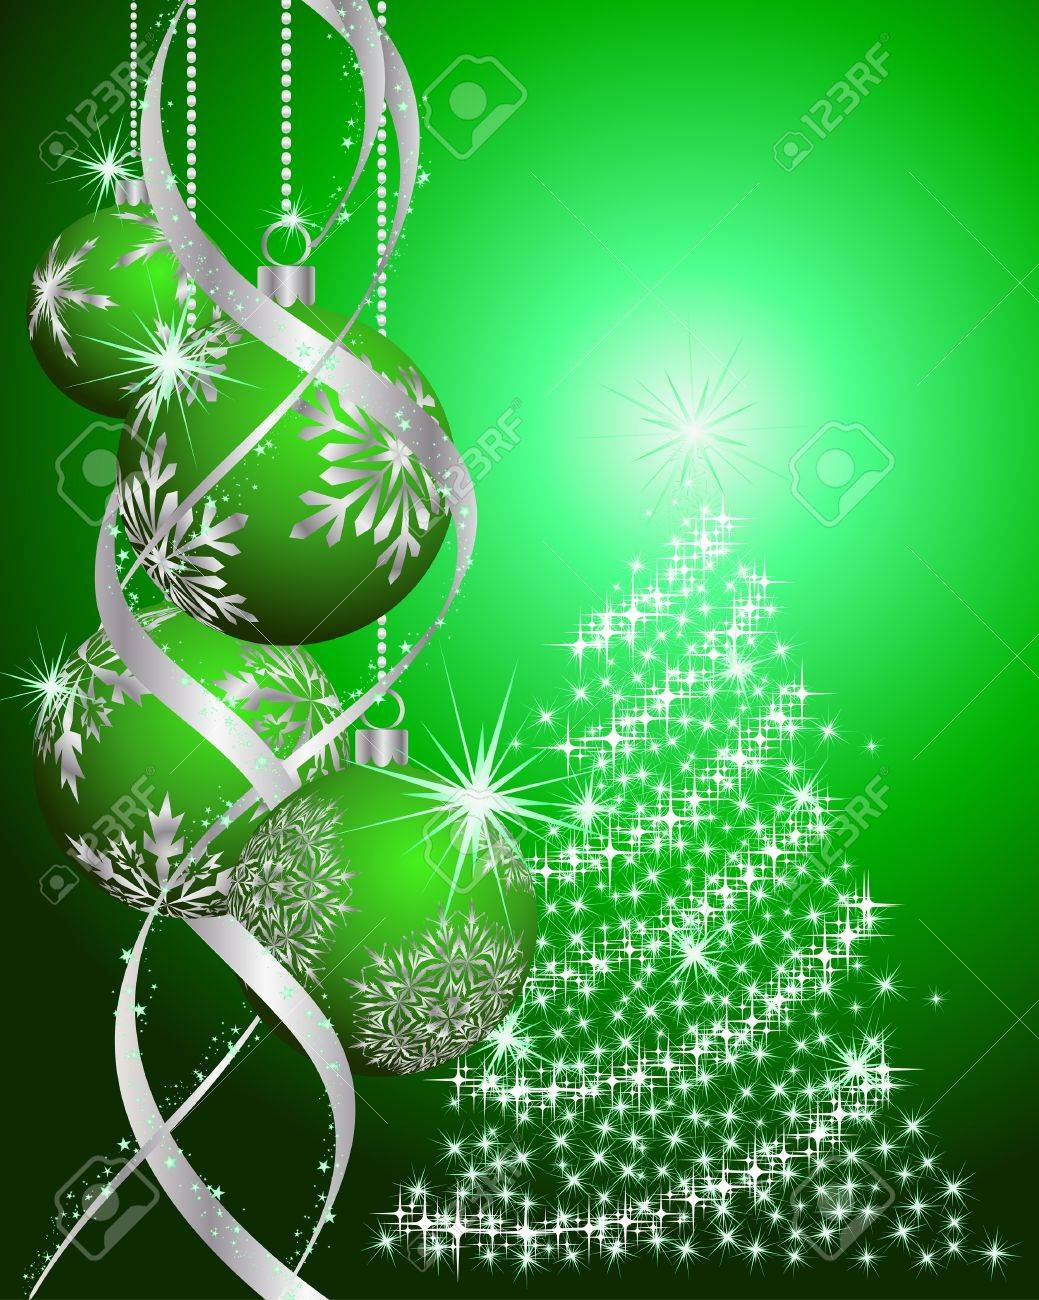 Beautiful vector christmas new year background for design use - Beautiful Christmas New Year Background For Design Use Stock Vector 7685201